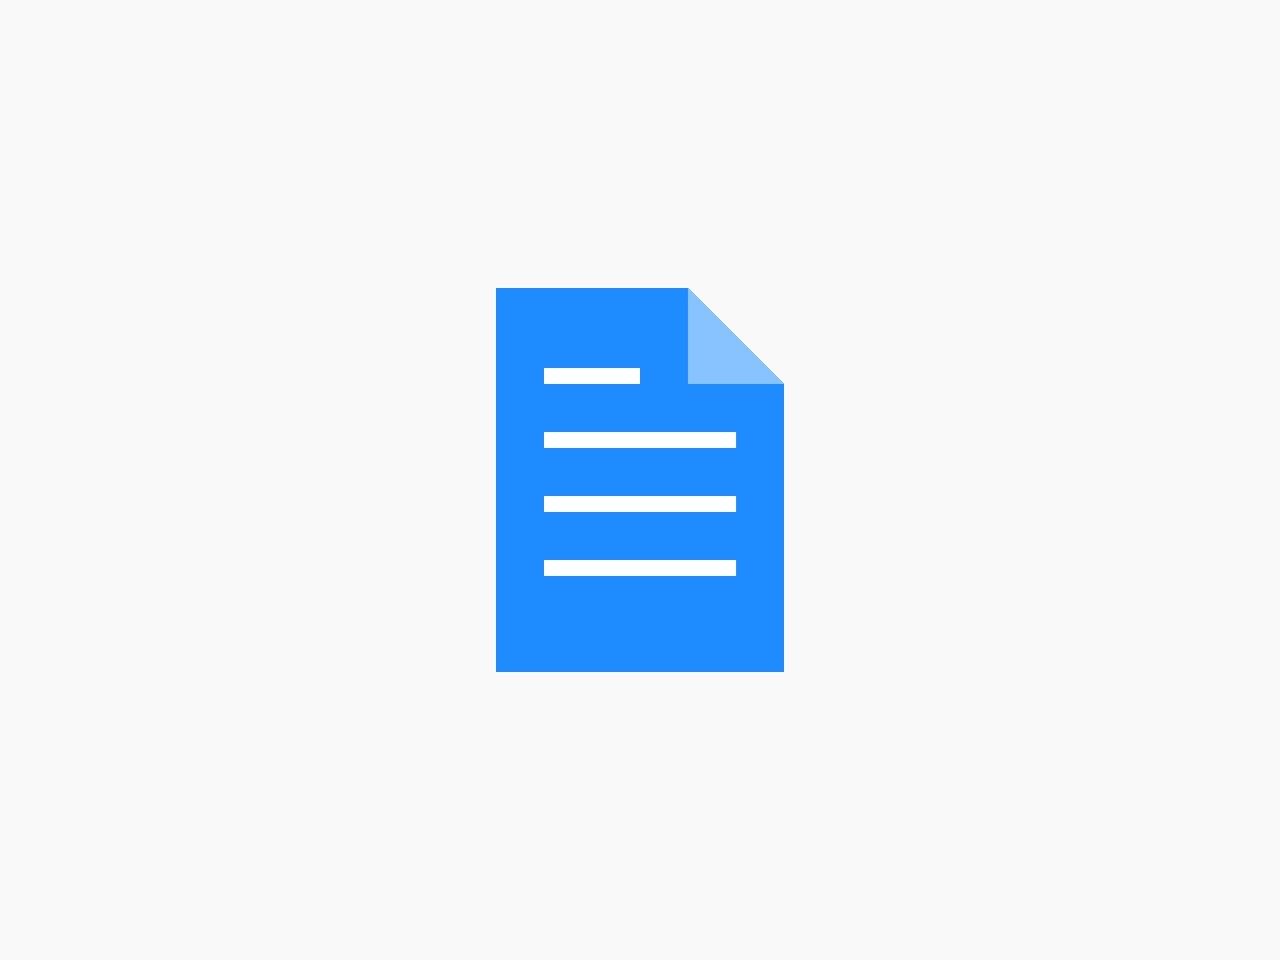 Cleveland's housing crisis and recovery in graphics: The ups and downs of …